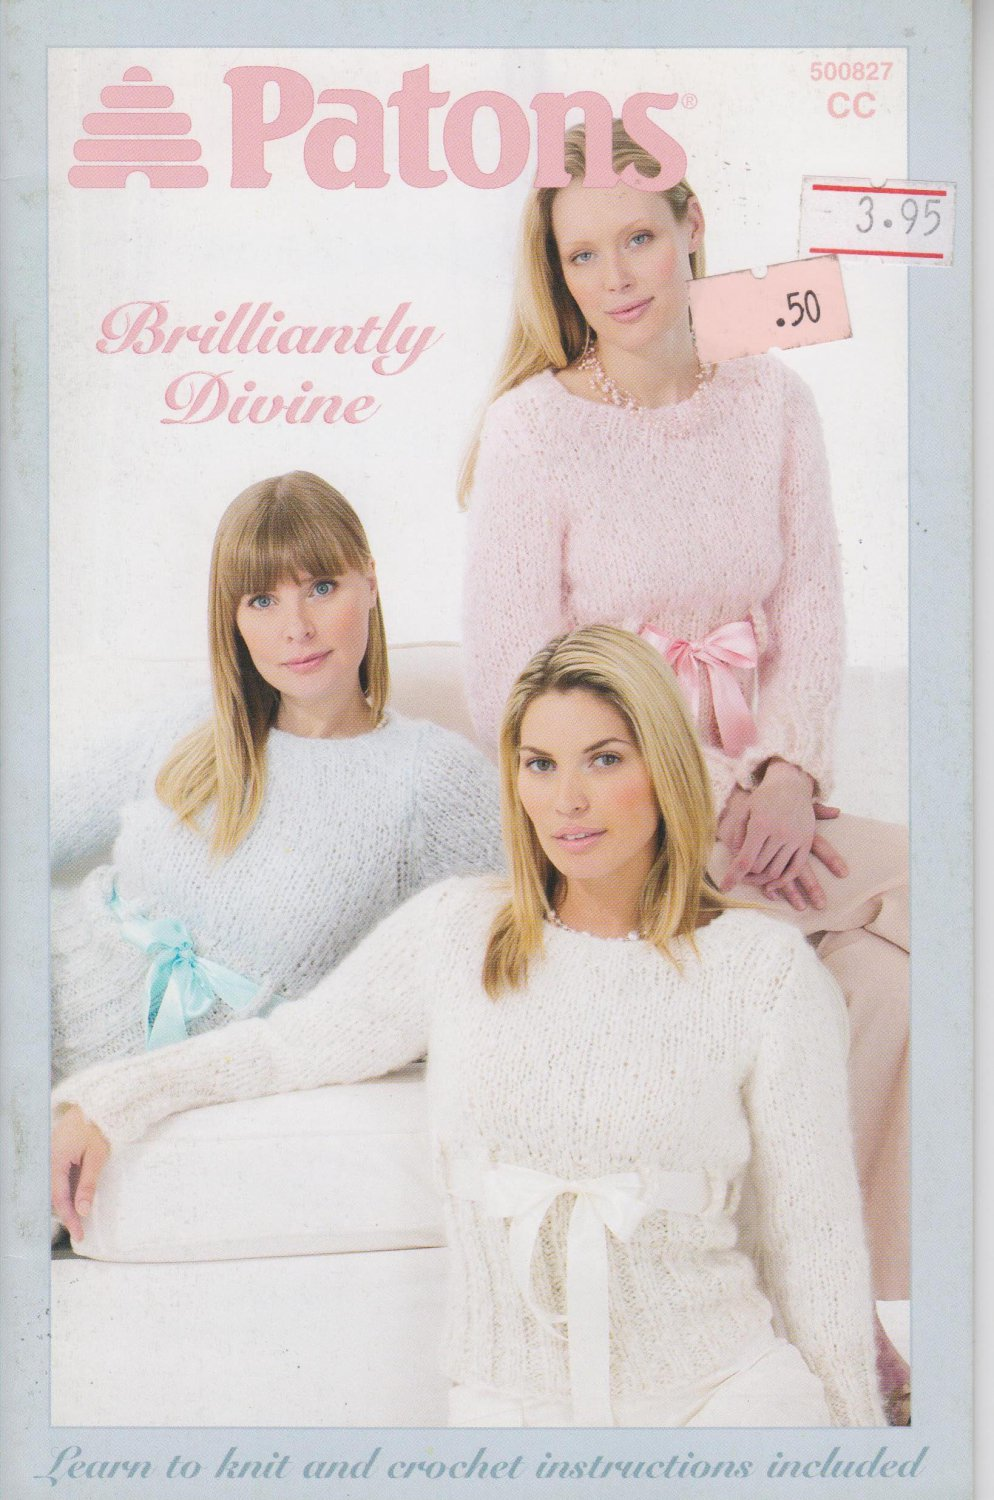 Patons Brilliantly Divine 2005 Knitting & Crochet Pattern Book #500827CC